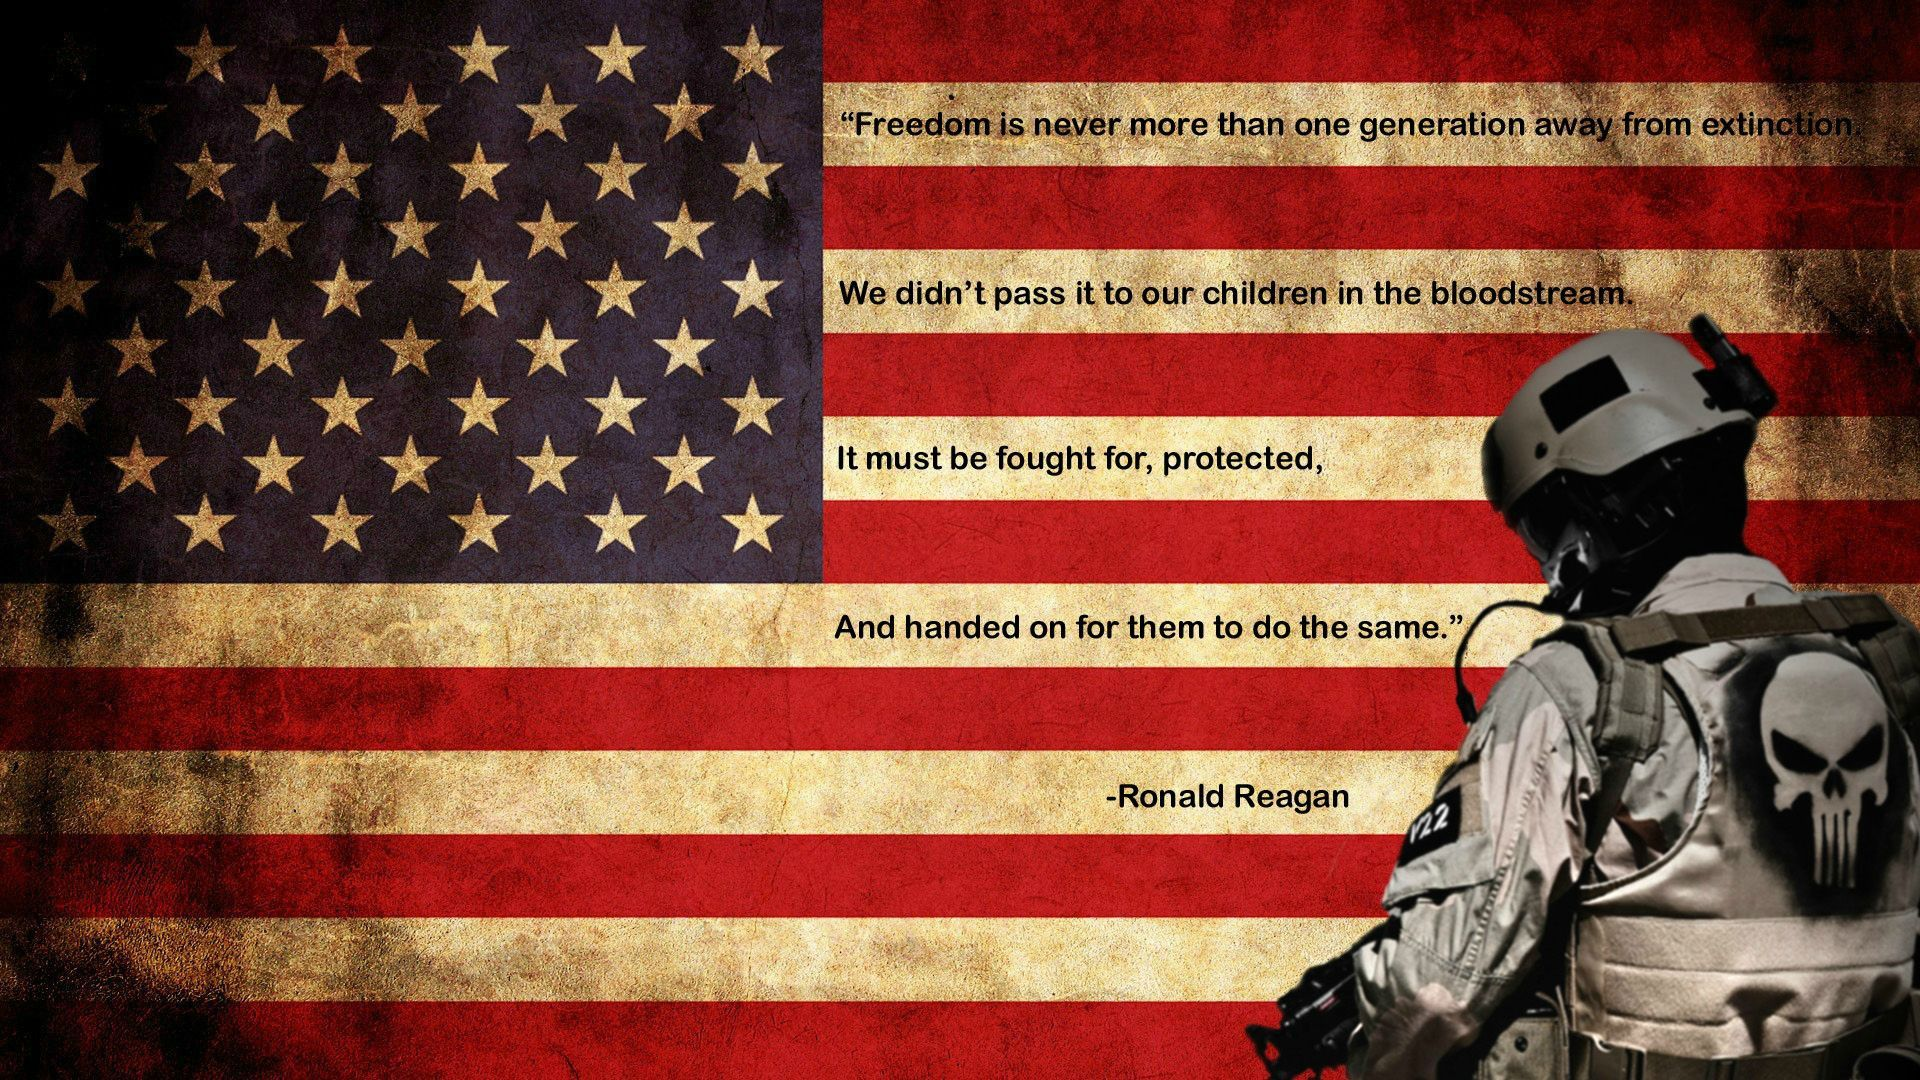 Pin By Legendary King On Quotes And Marine Stuff